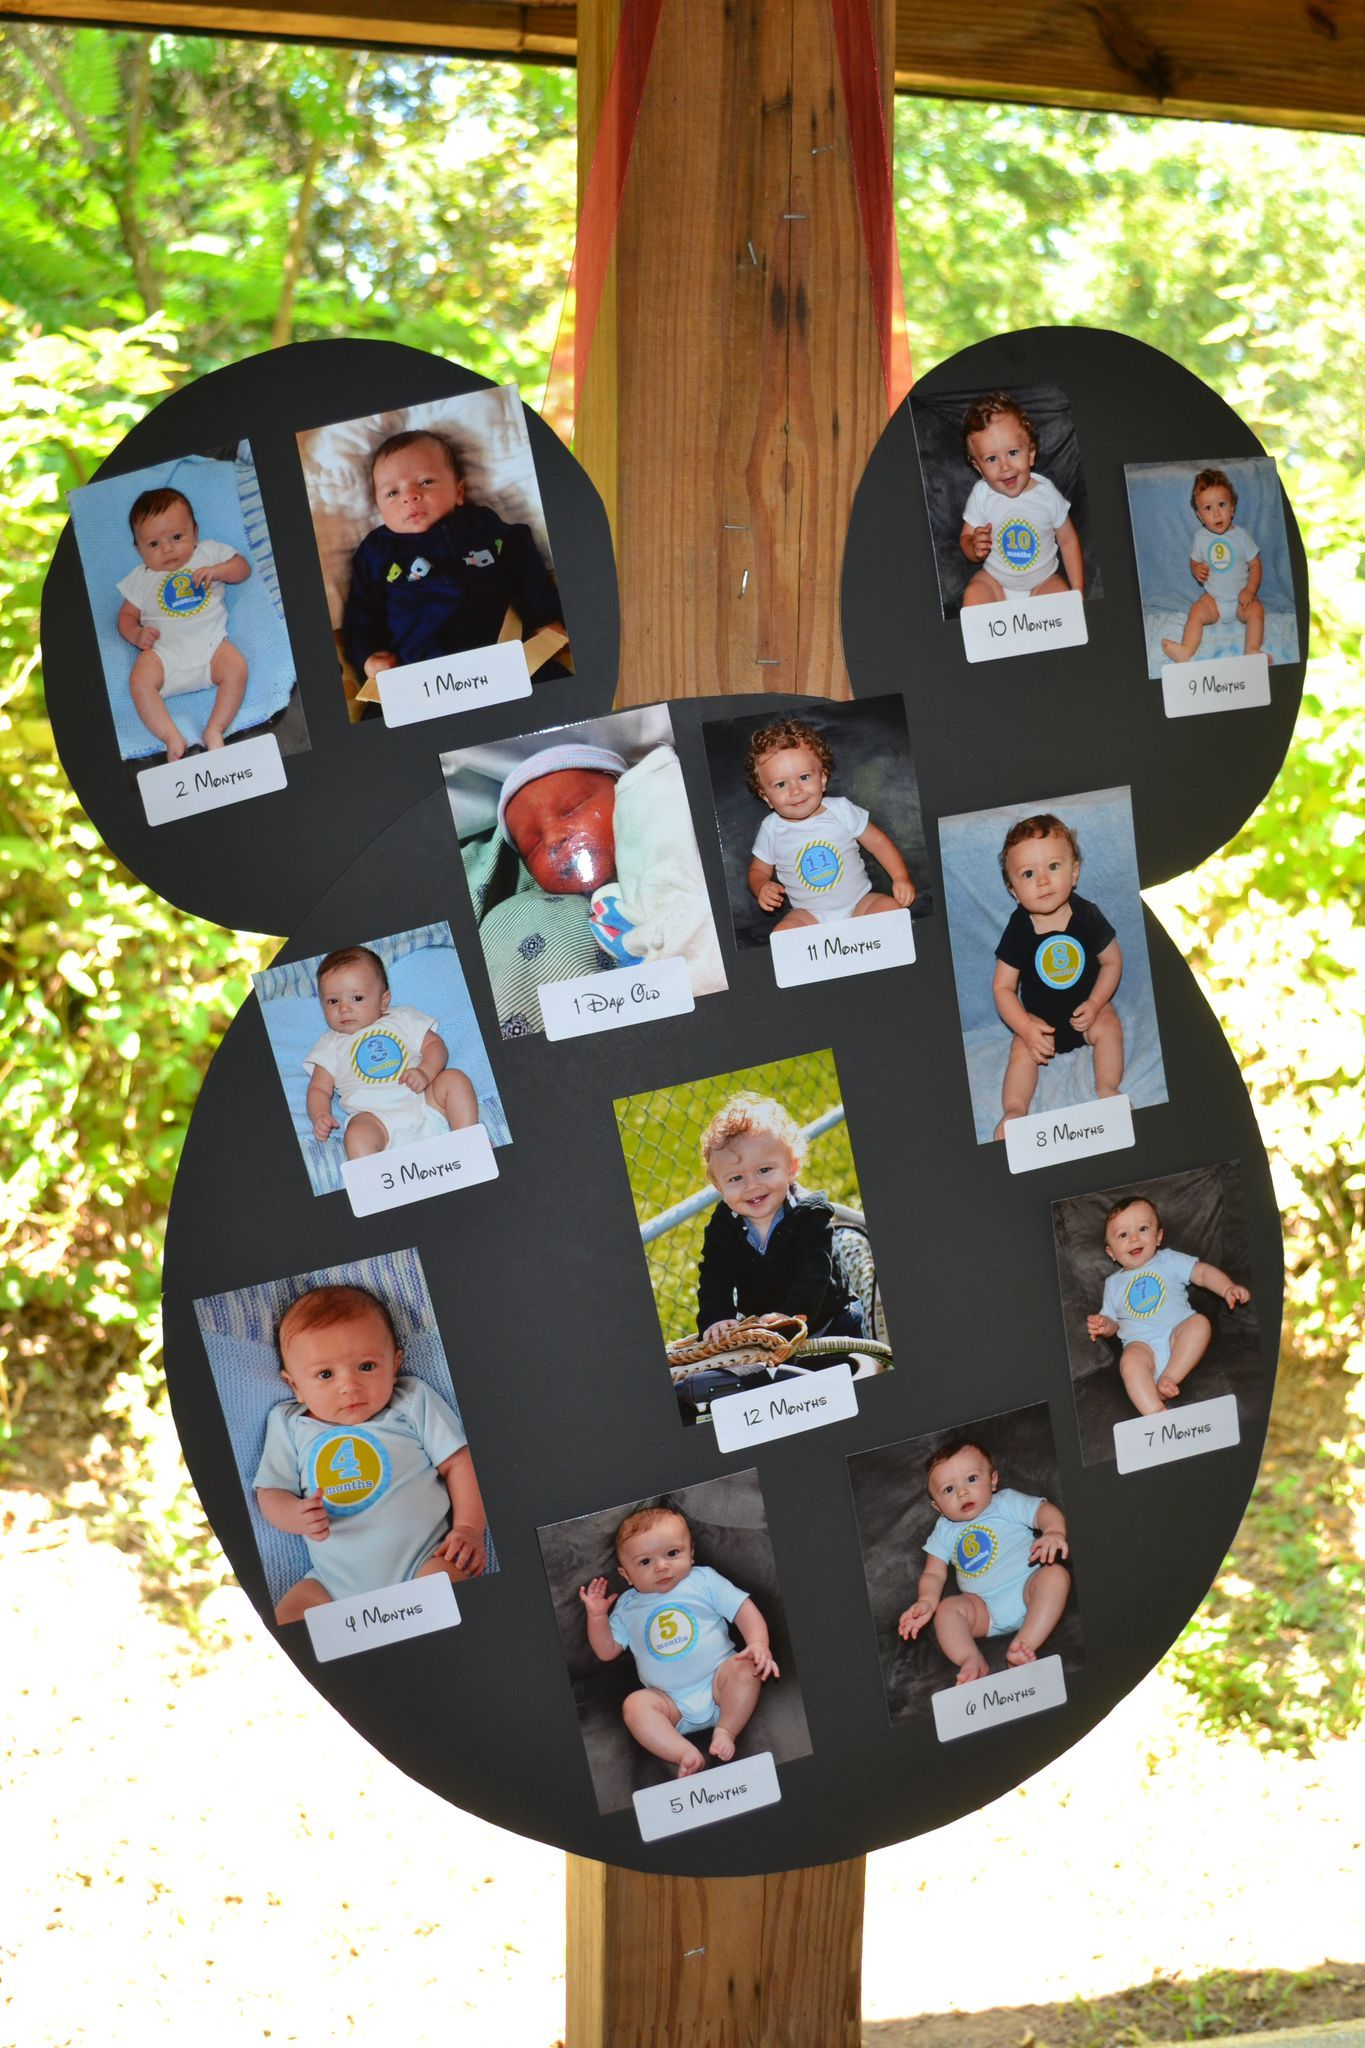 1st Birthday Mickey Mouse 12 month photo collage decoration idea